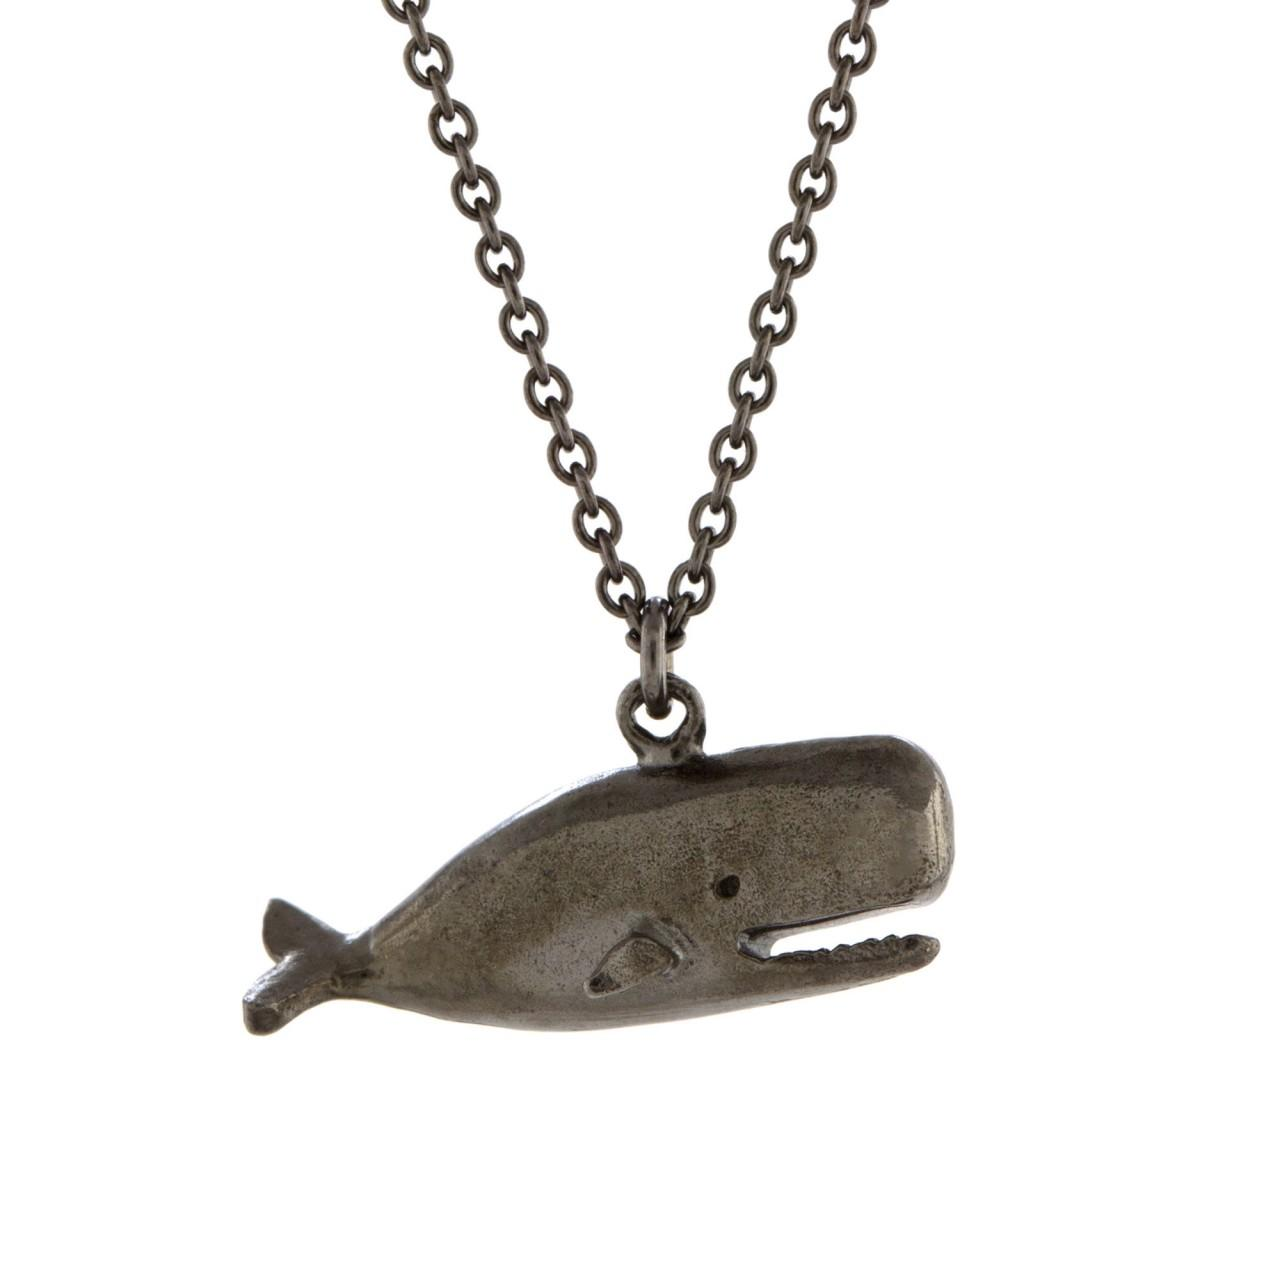 Black rhodium plated Moby Dick necklace £132 (available in store only)